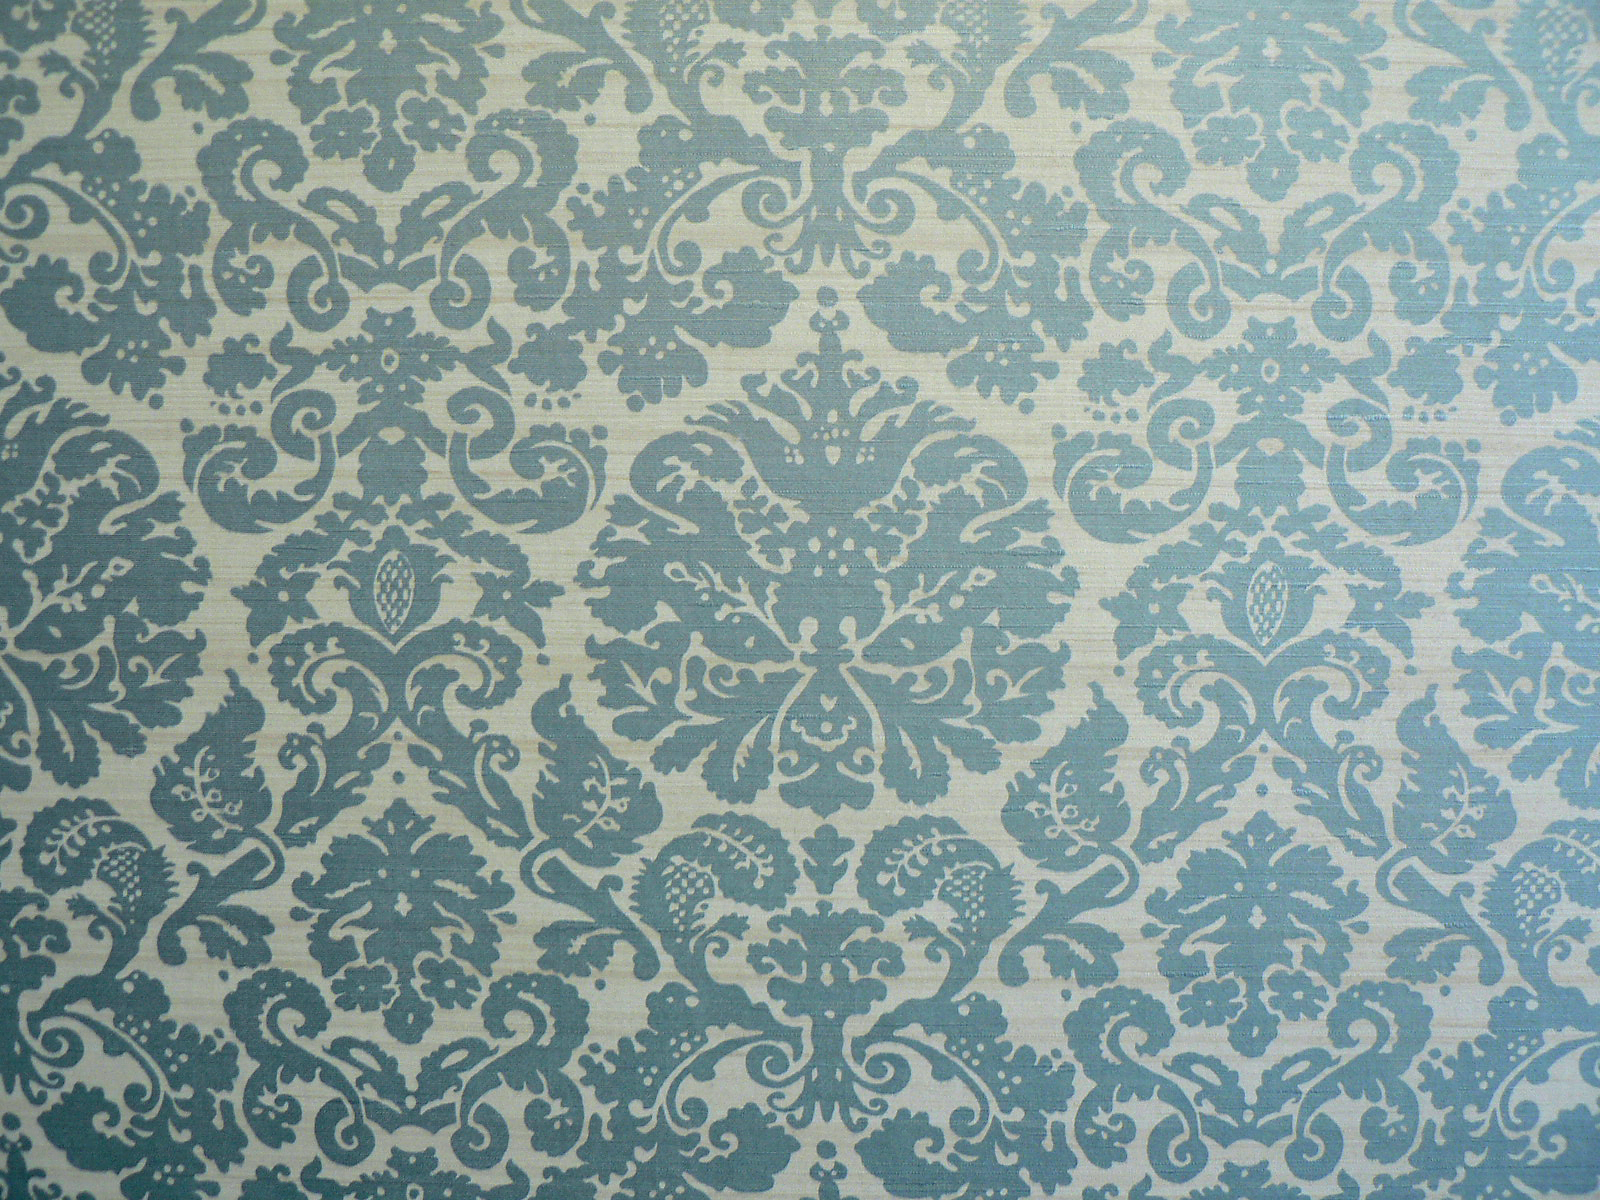 Free Pattern Wallpapers